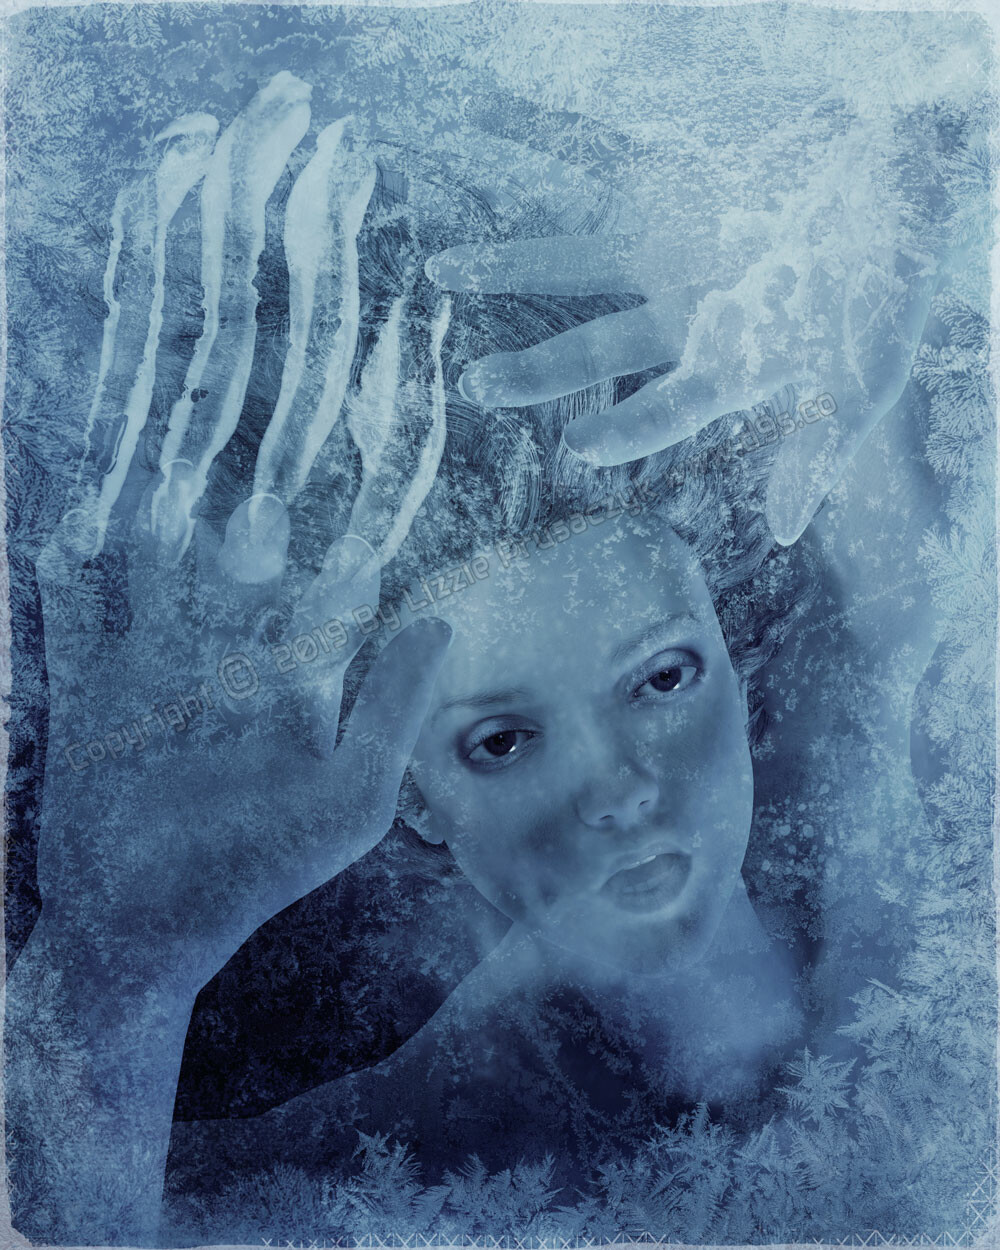 A woman is trapped and dying beneath a sheet of ice. At first she tried to escape but now she is resigned to her fate. No one can save her.